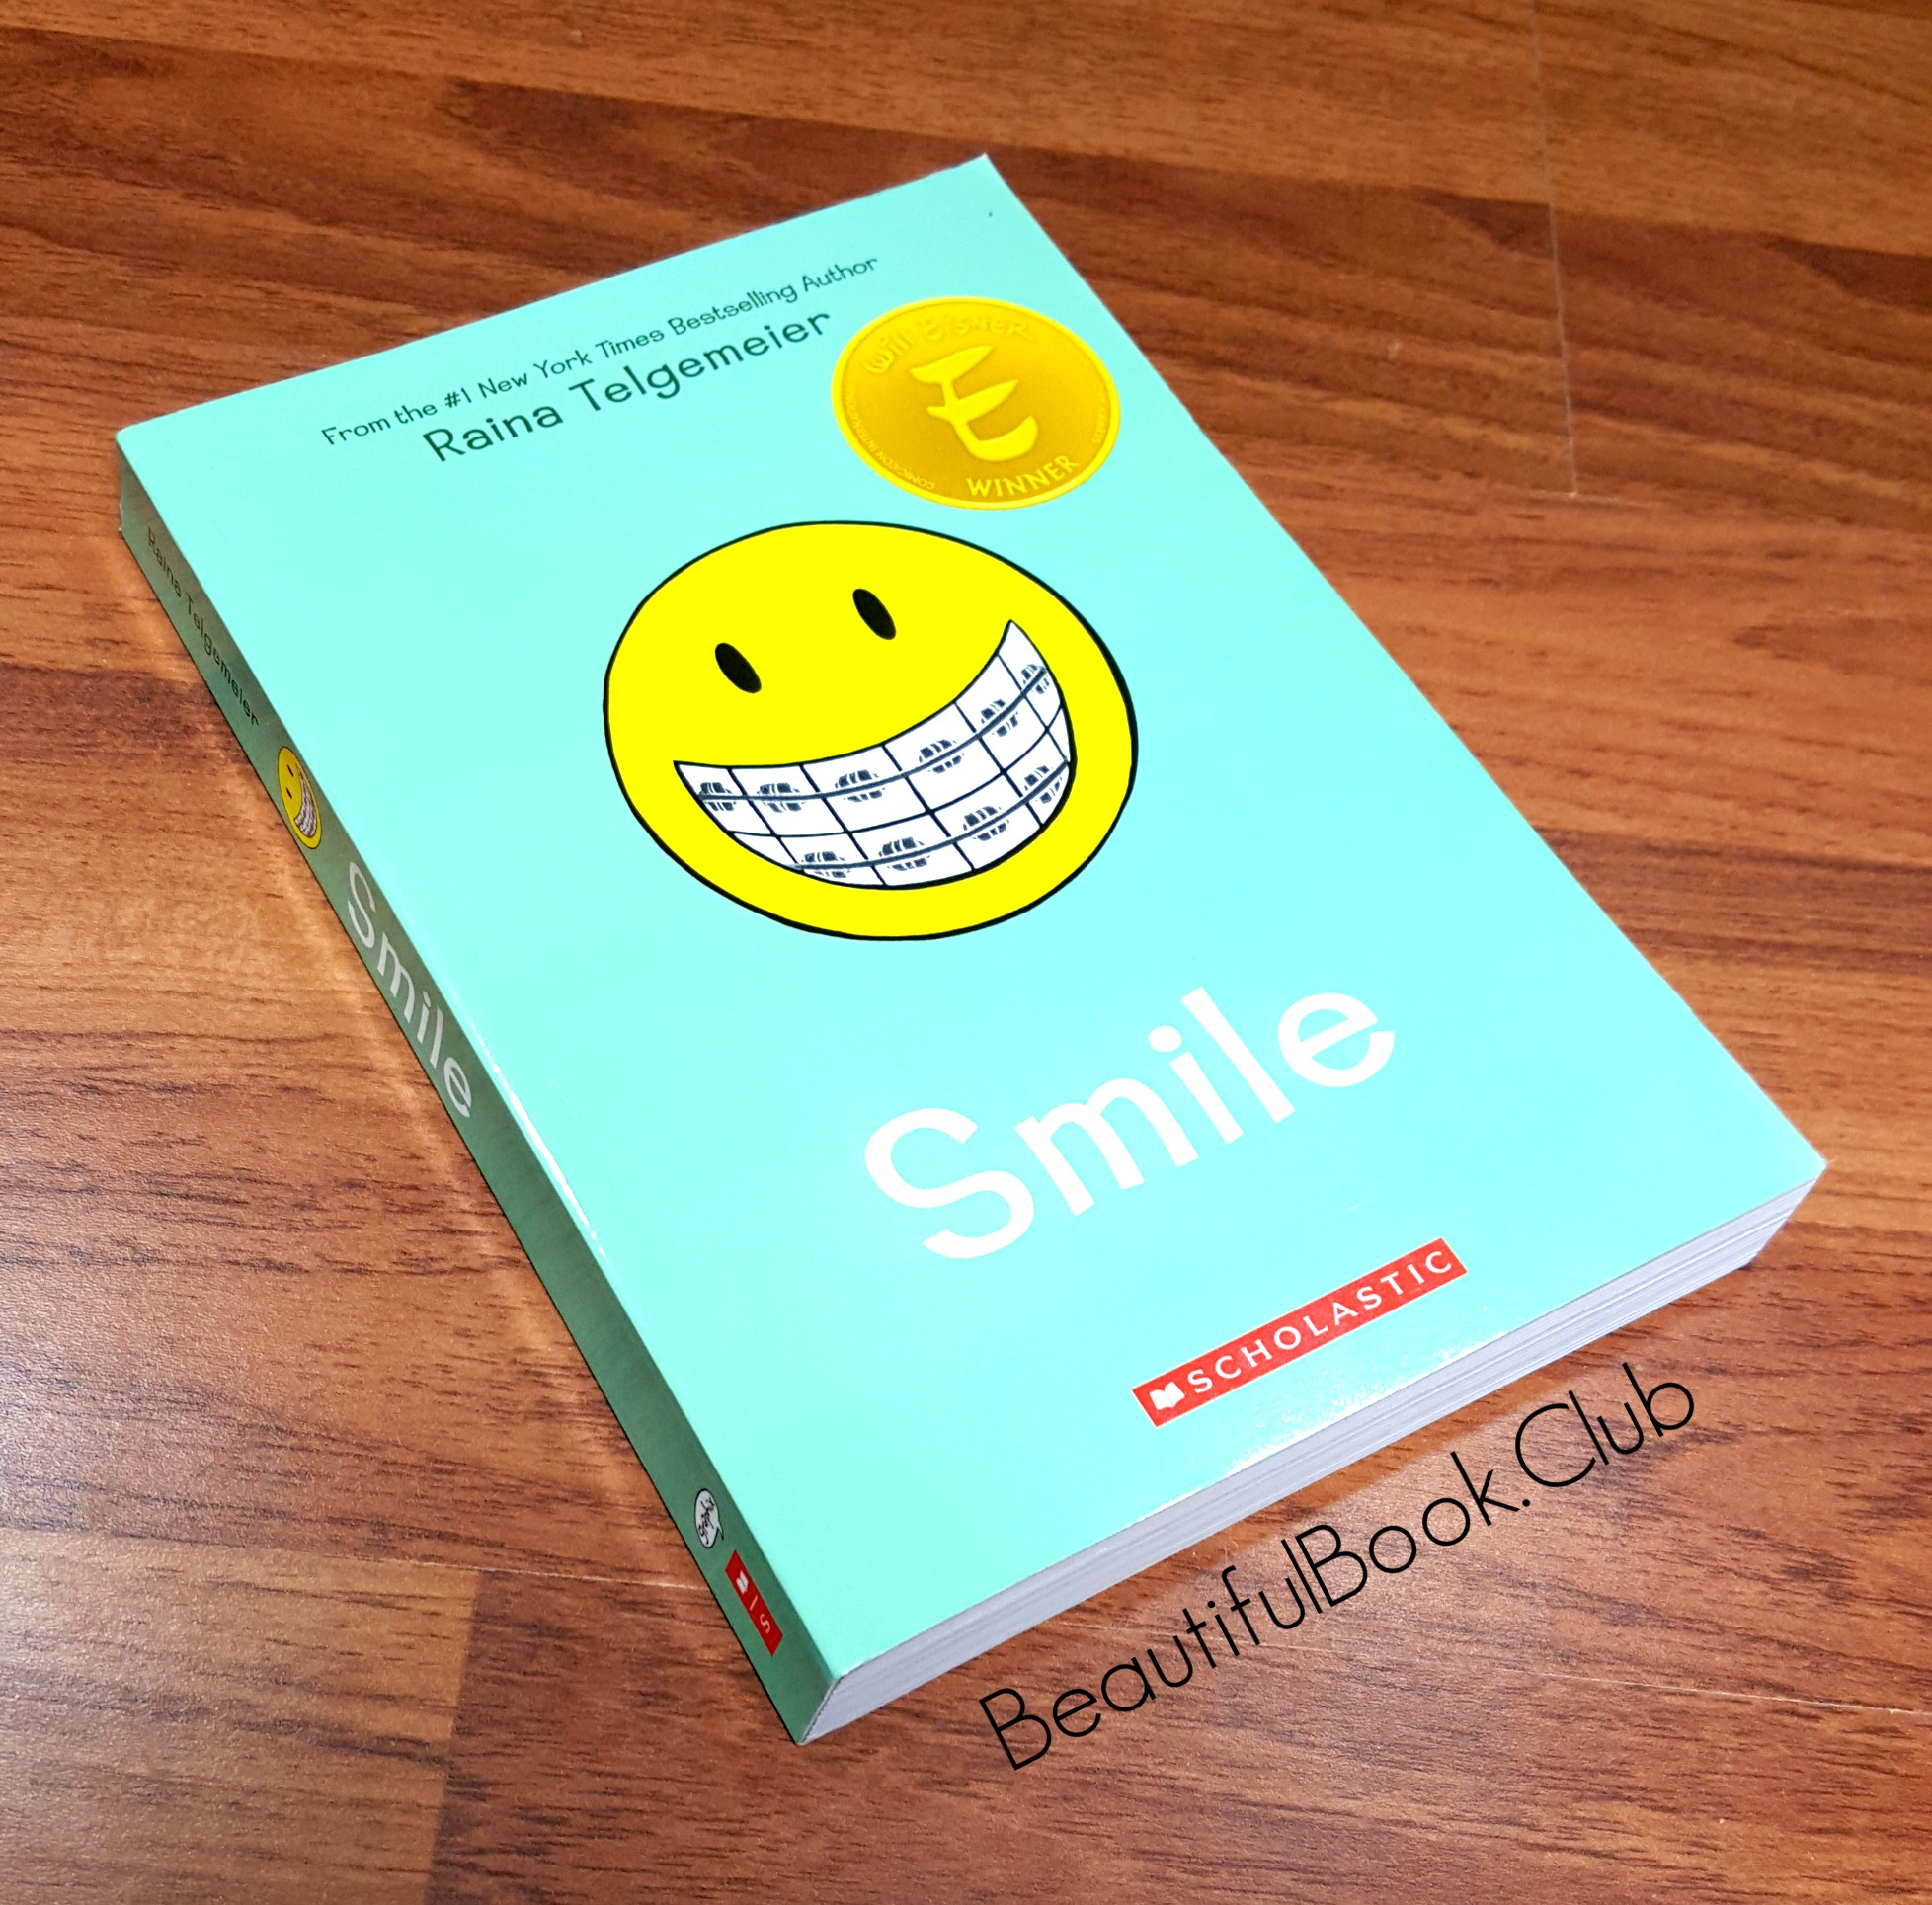 smile by raina telgemeier graphic novel